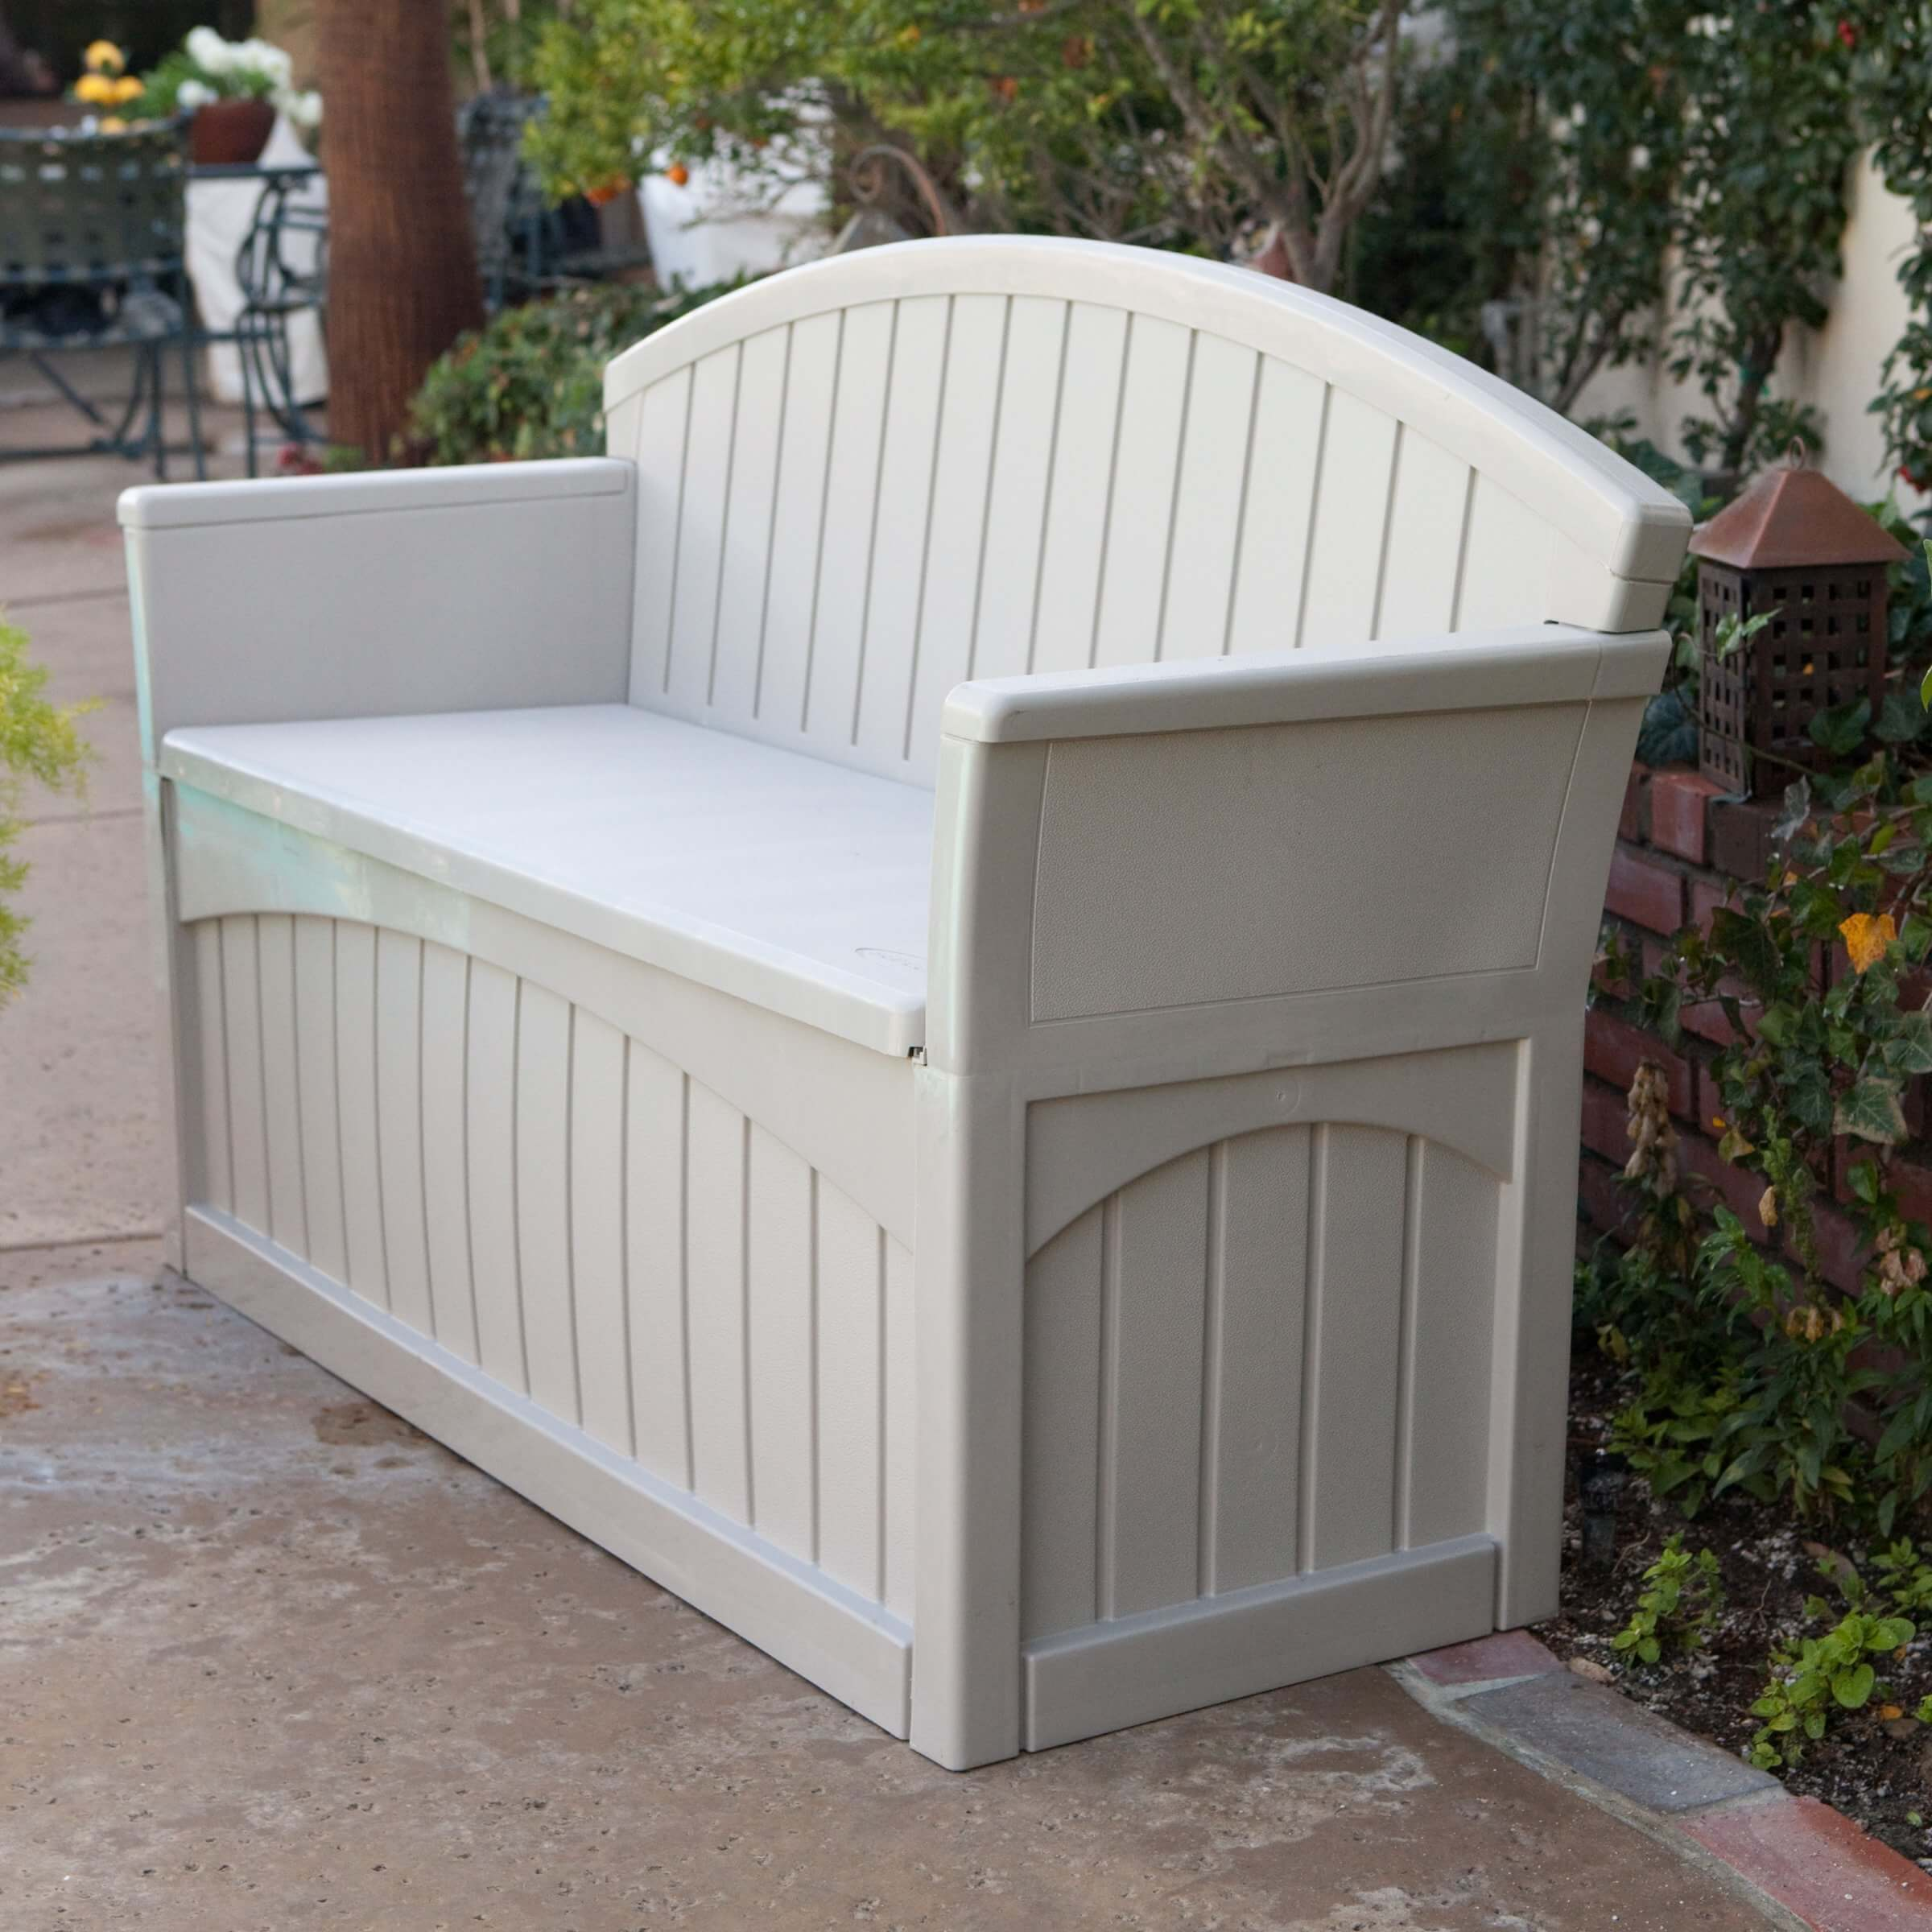 Patio Storage Bench & Top 10 Types of Outdoor Deck Storage Boxes Aboutintivar.Com